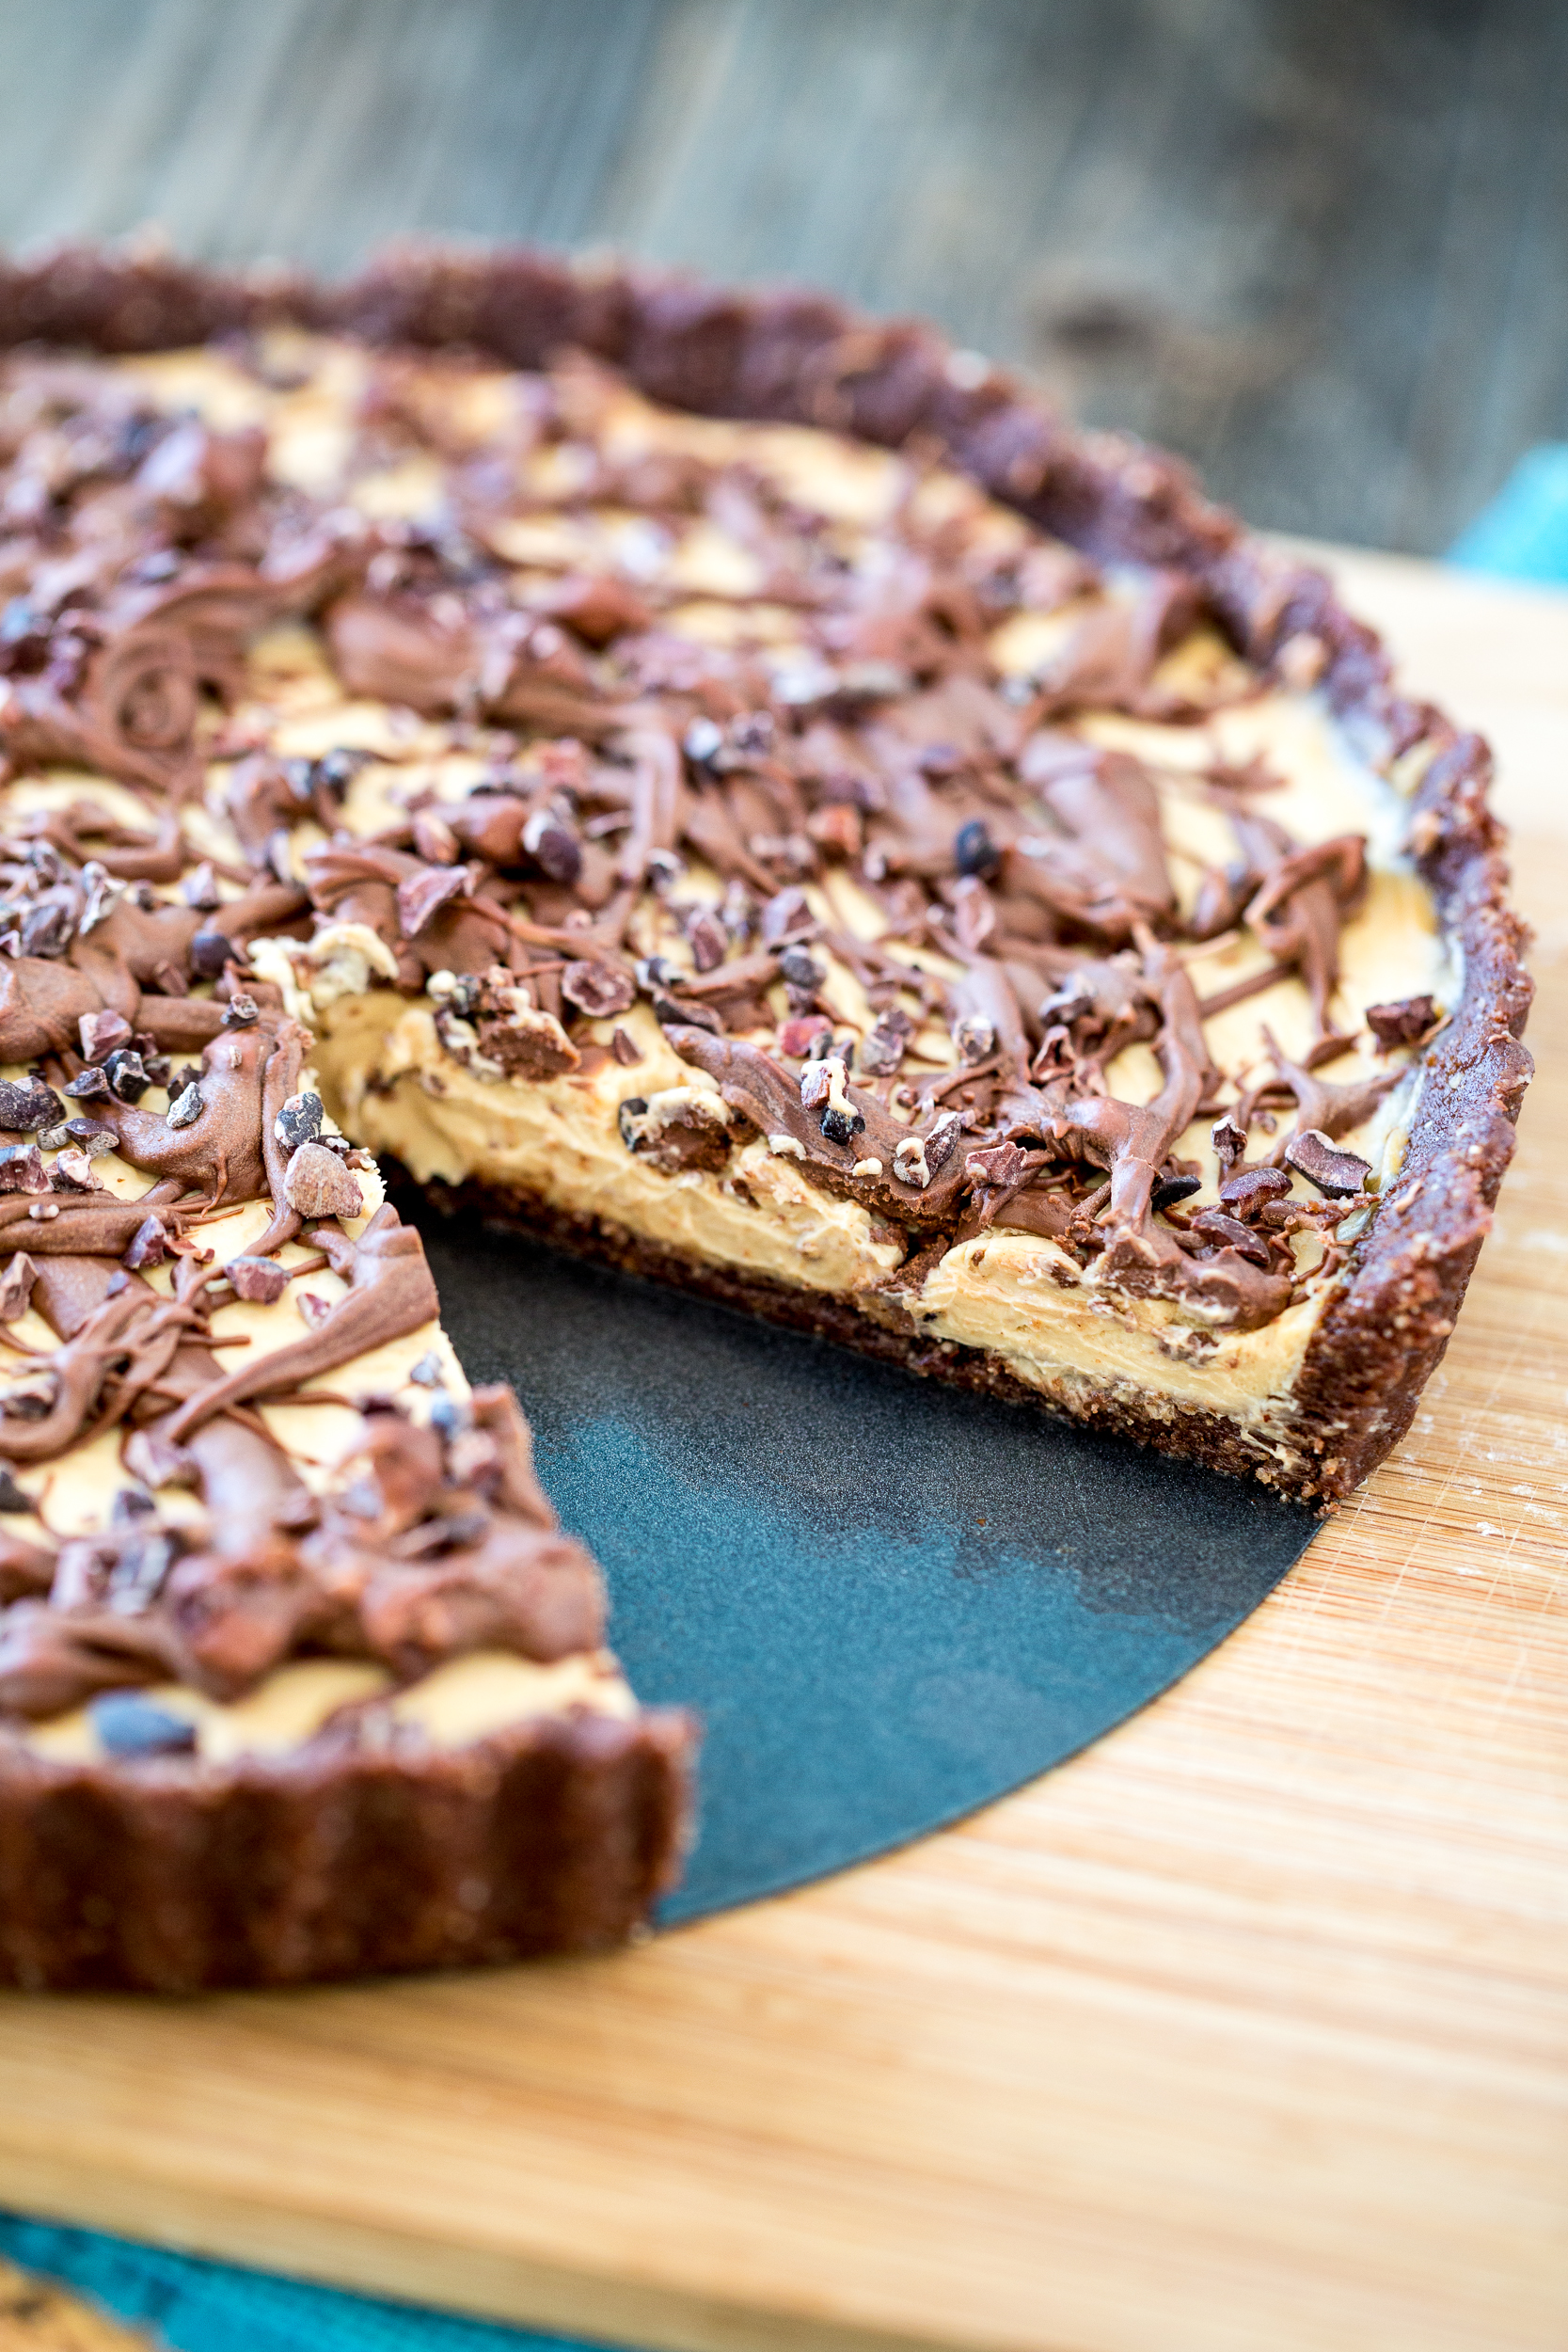 No-Bake Chocolate Peanut Butter Tart